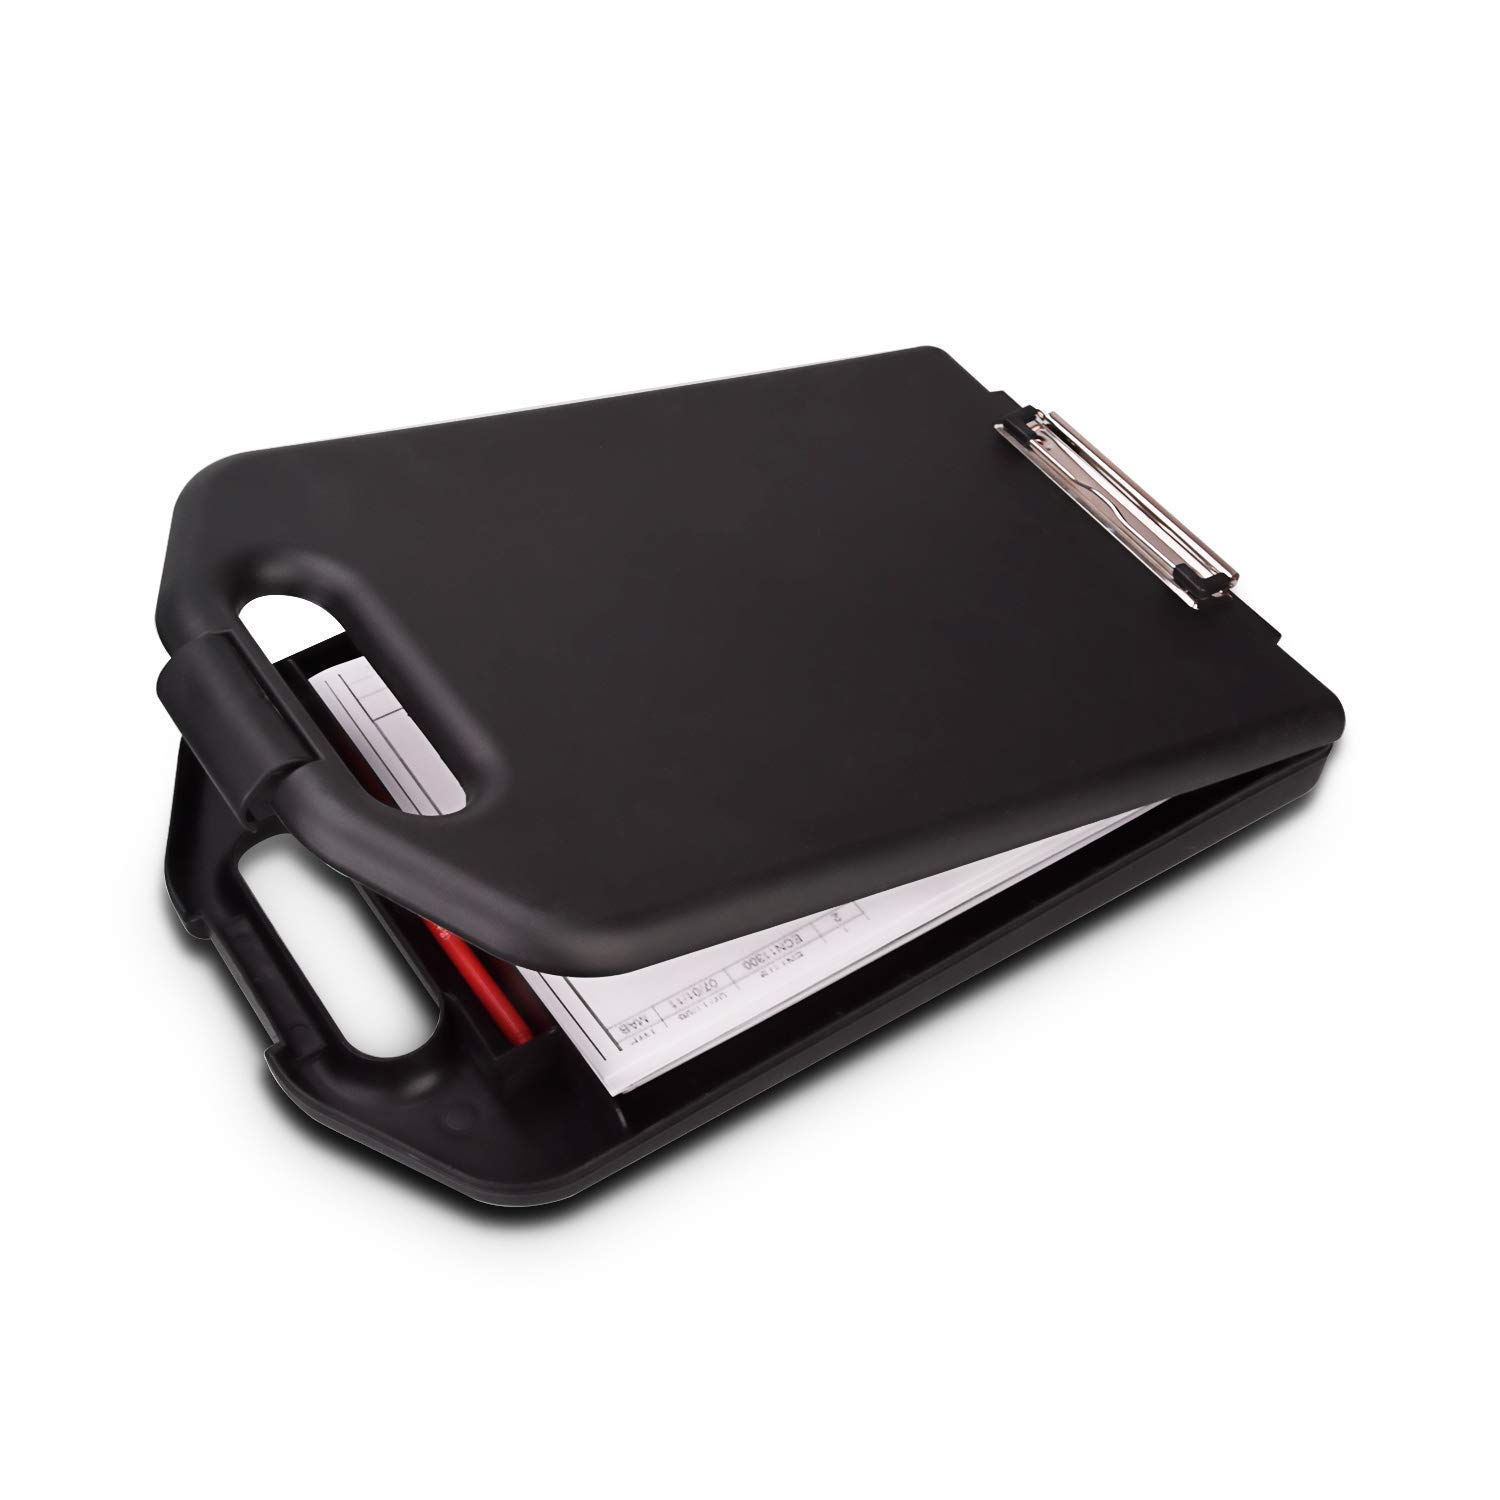 ZCZN Plastic Portable Clipboard Case, Suitable for School,Utility,Industrial Office, Medical Personnel, Black with…